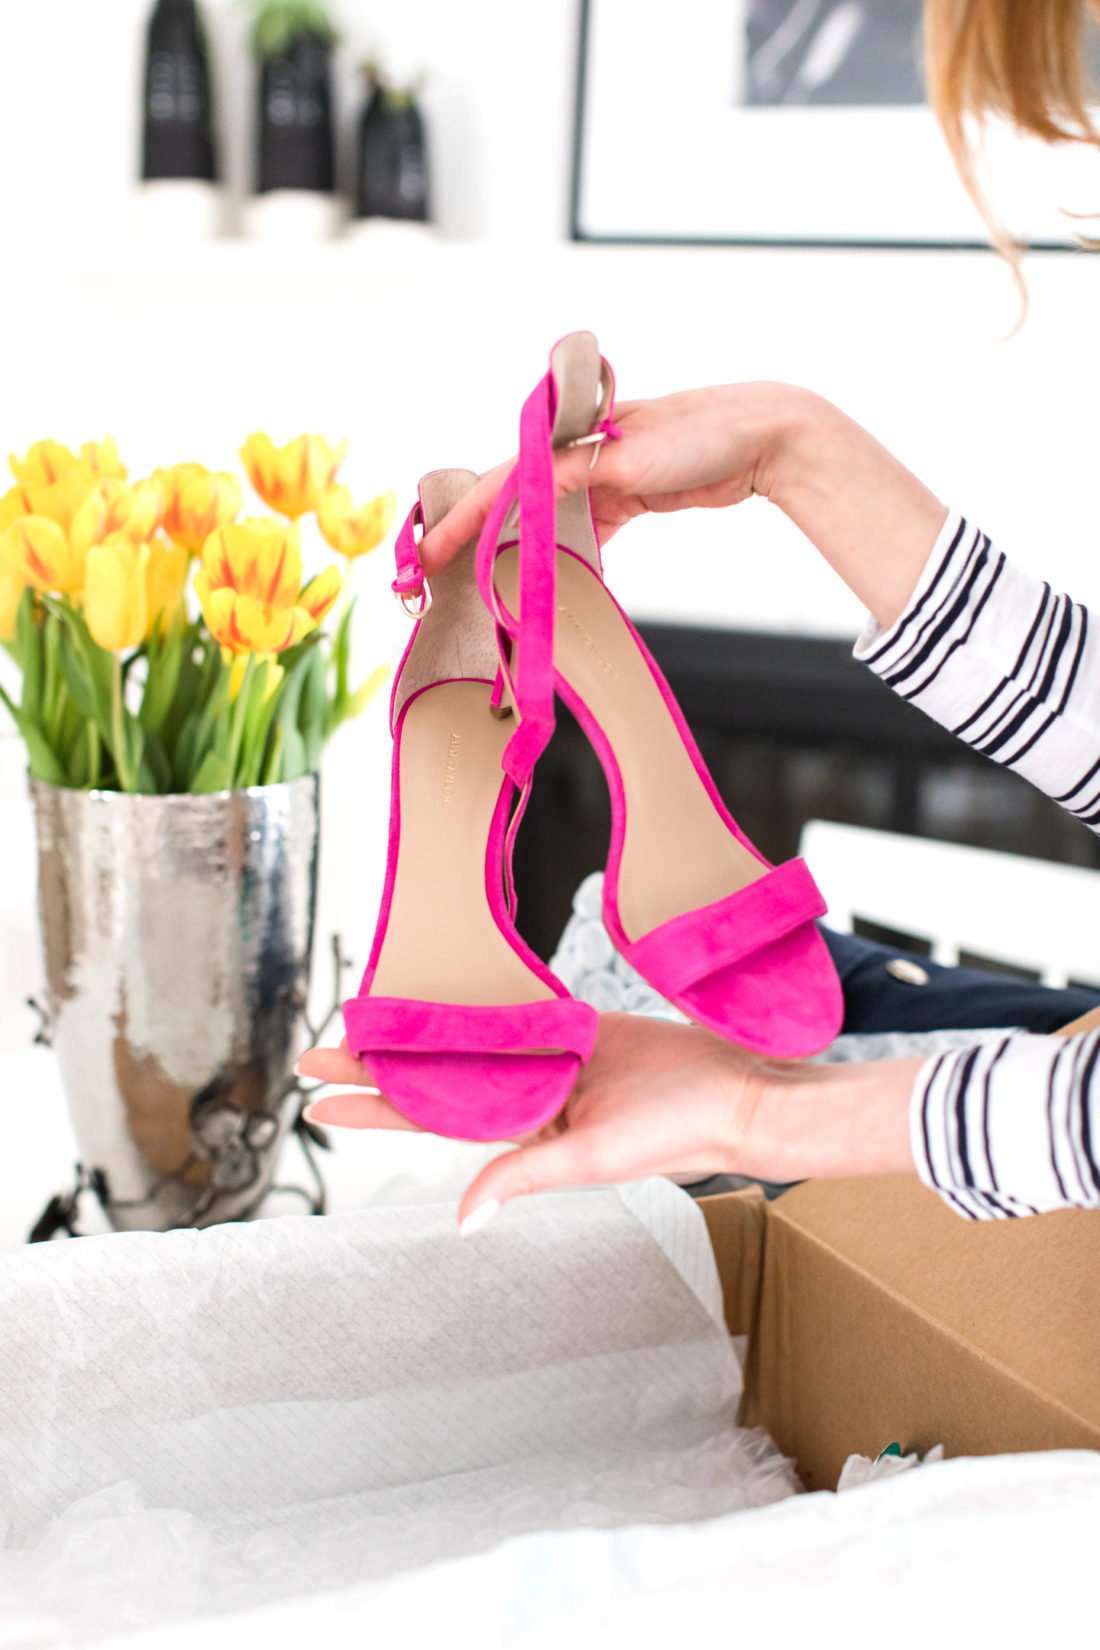 Eva Amurri Martino unpacks a pair of hot pink strappy heels from her thredUP delivery box